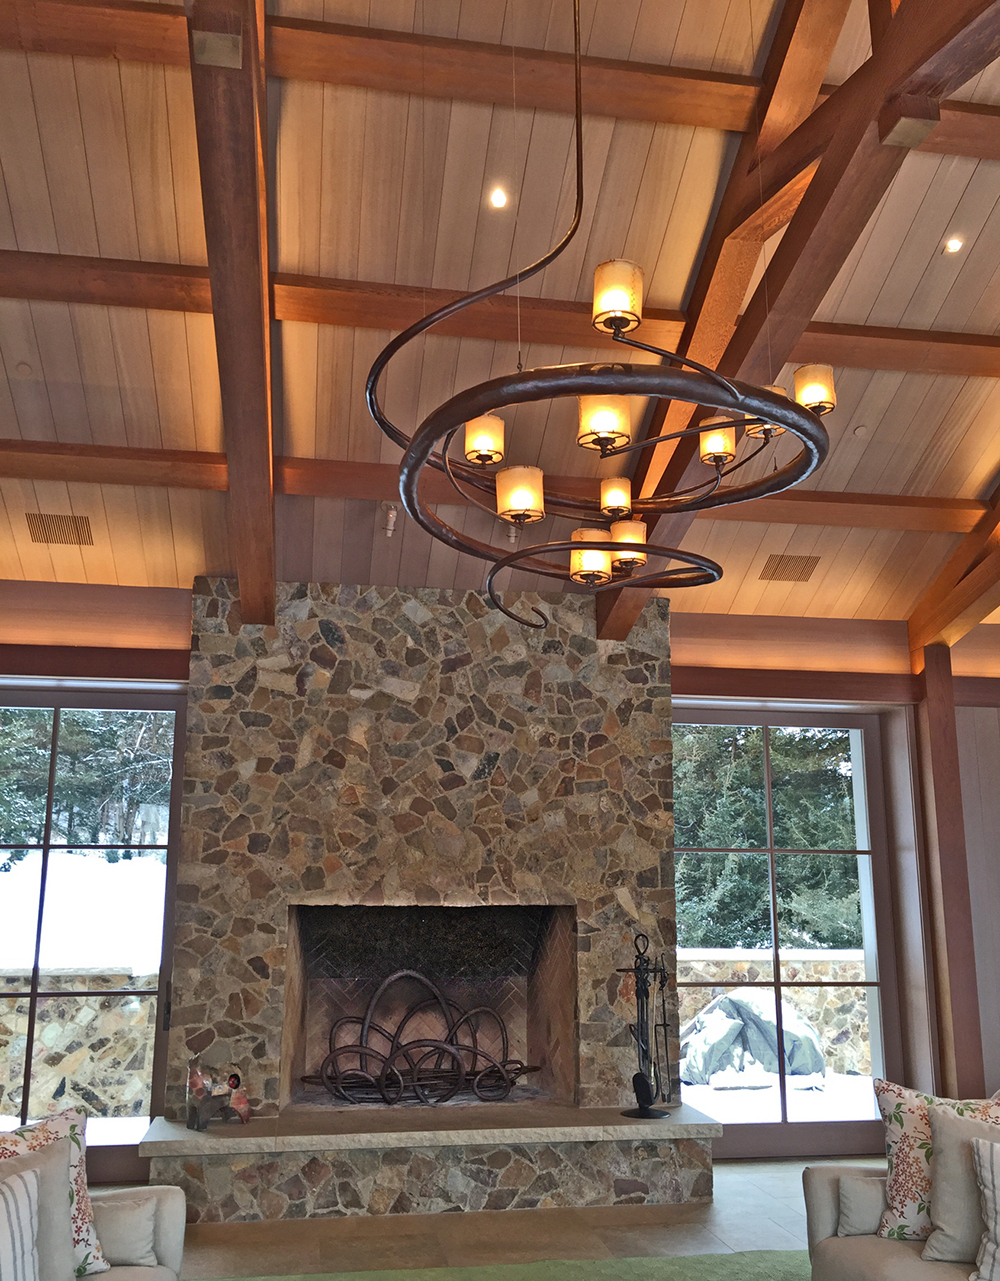 Fireplace chandelier